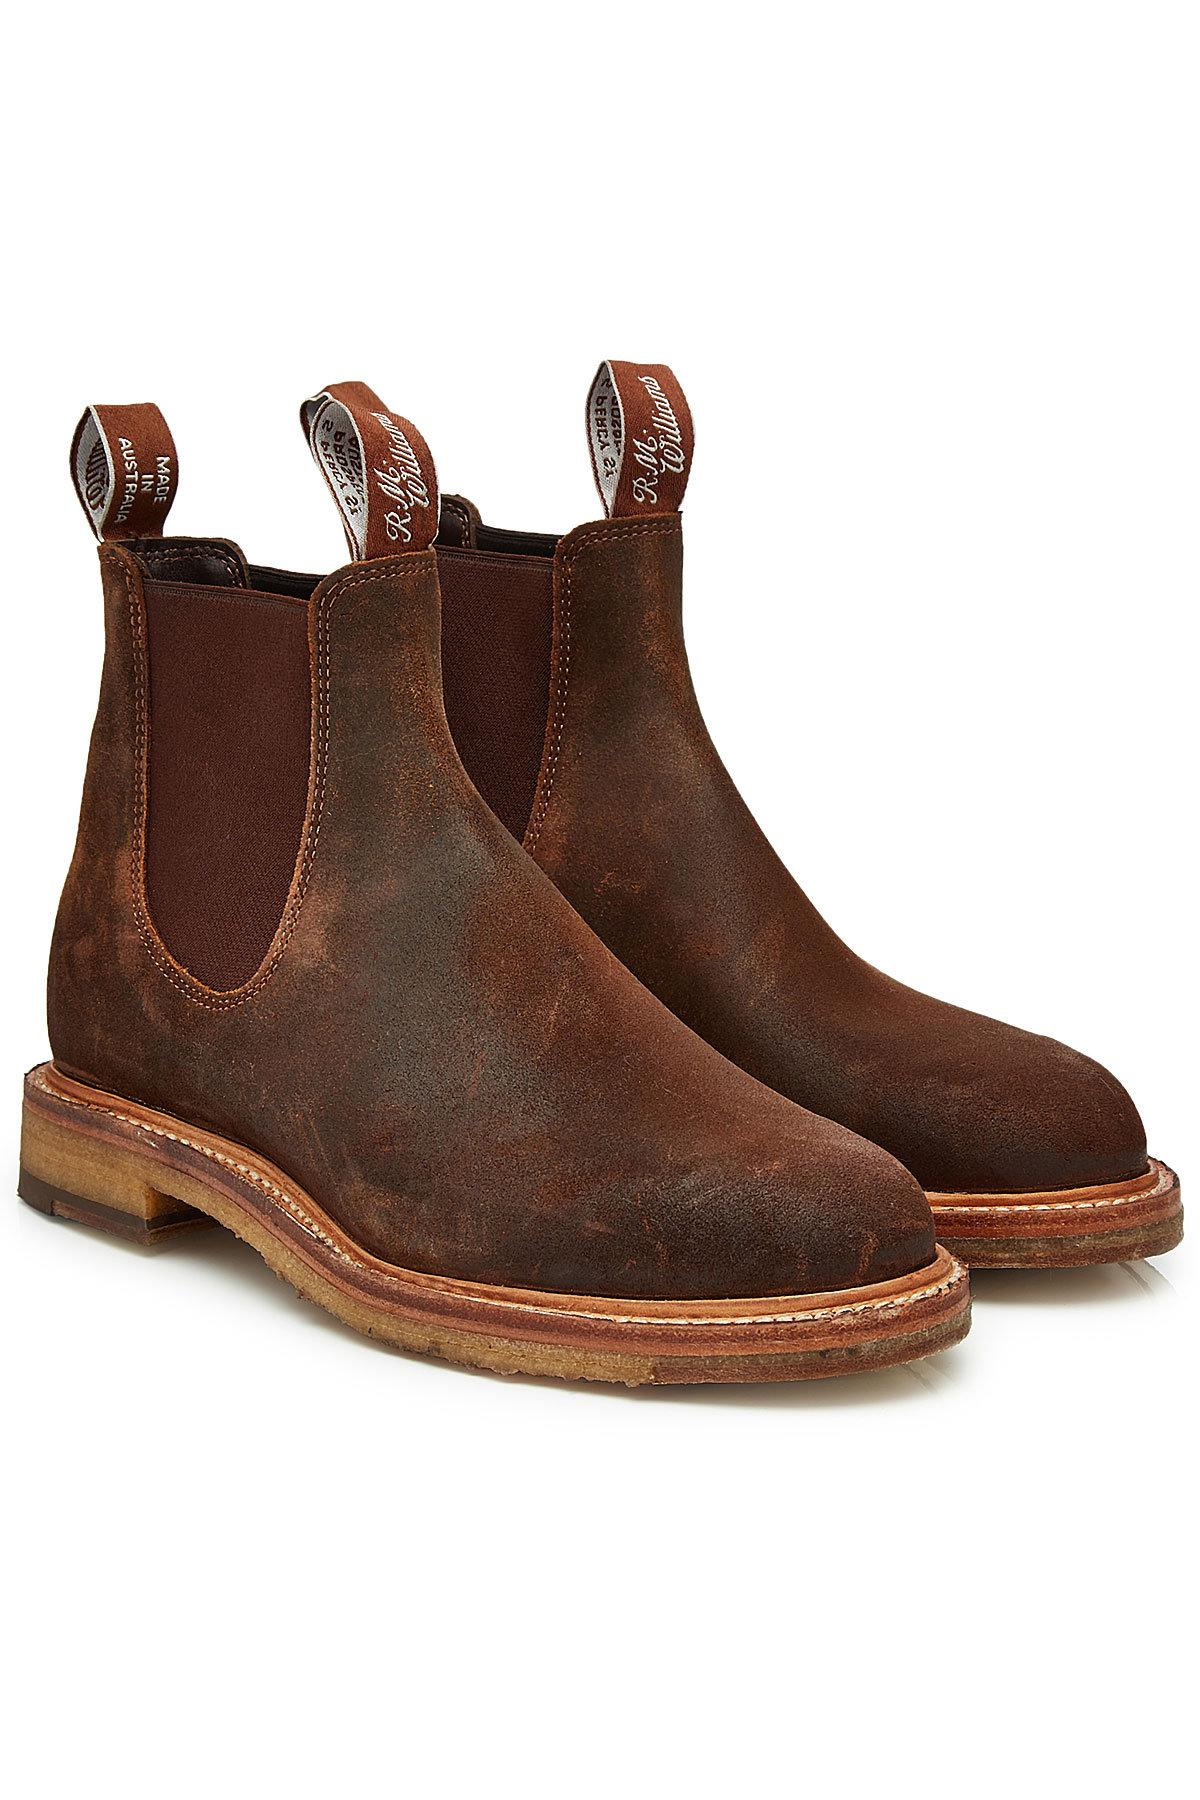 Lyst - R.M. Williams Gilchrist Suede Boots in Brown for Men